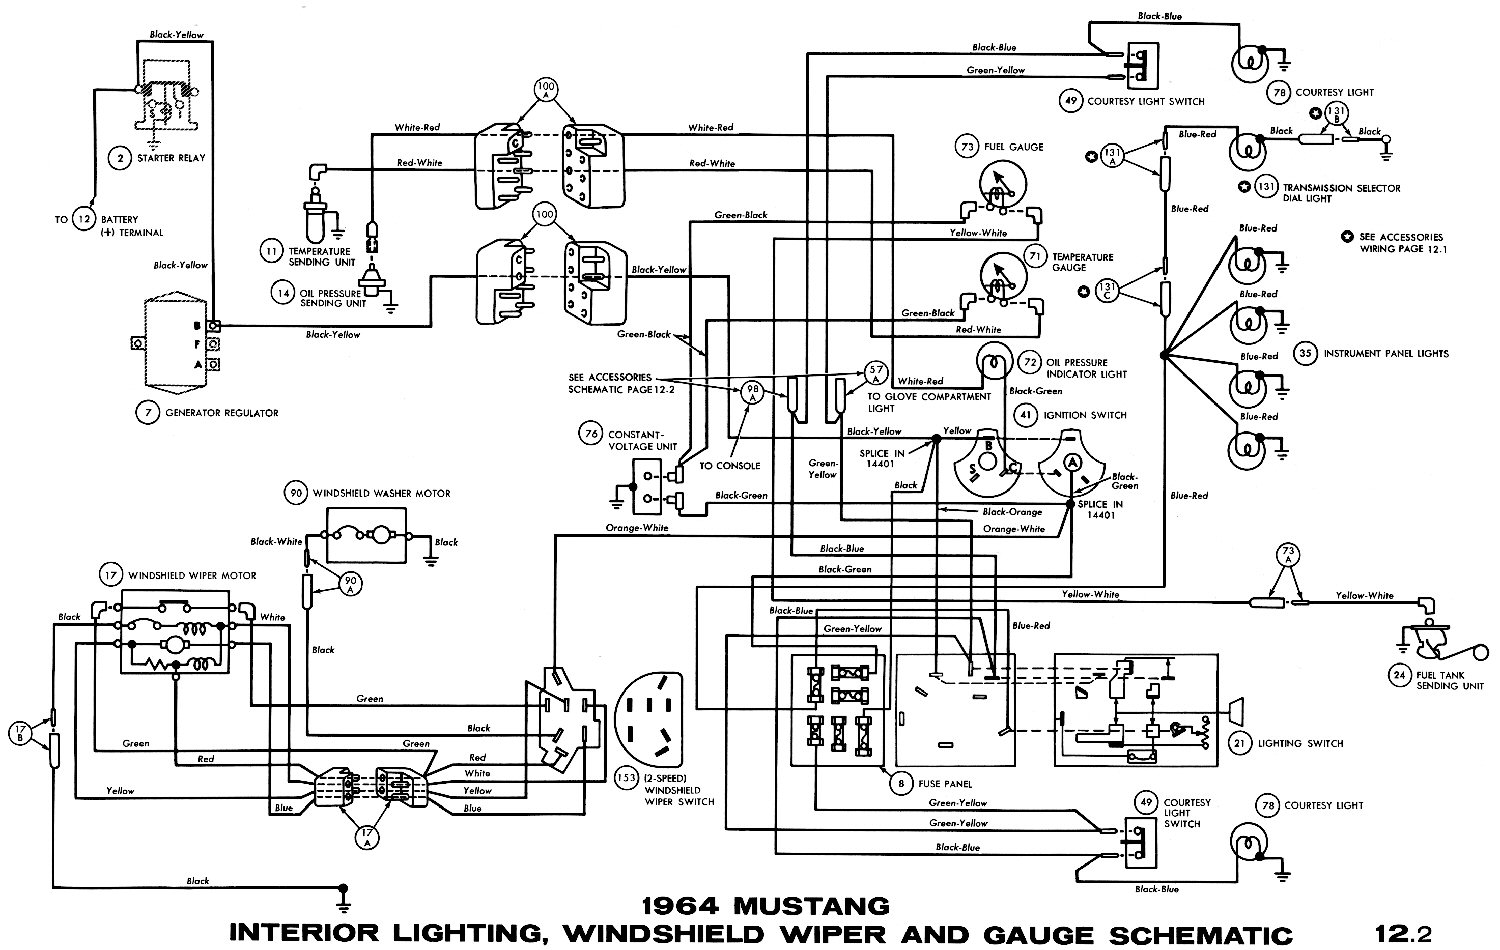 1969 Chevy Nova Wiring Diagram together with 1966 Mustang Wiring Diagrams also 1375620 72 F100 Fuse Block as well 1968 Mustang Wiring Diagram Vacuum Schematics further 1967 Mustang Wiring And Vacuum Diagrams. on 1973 mustang mach 1 wiring diagram